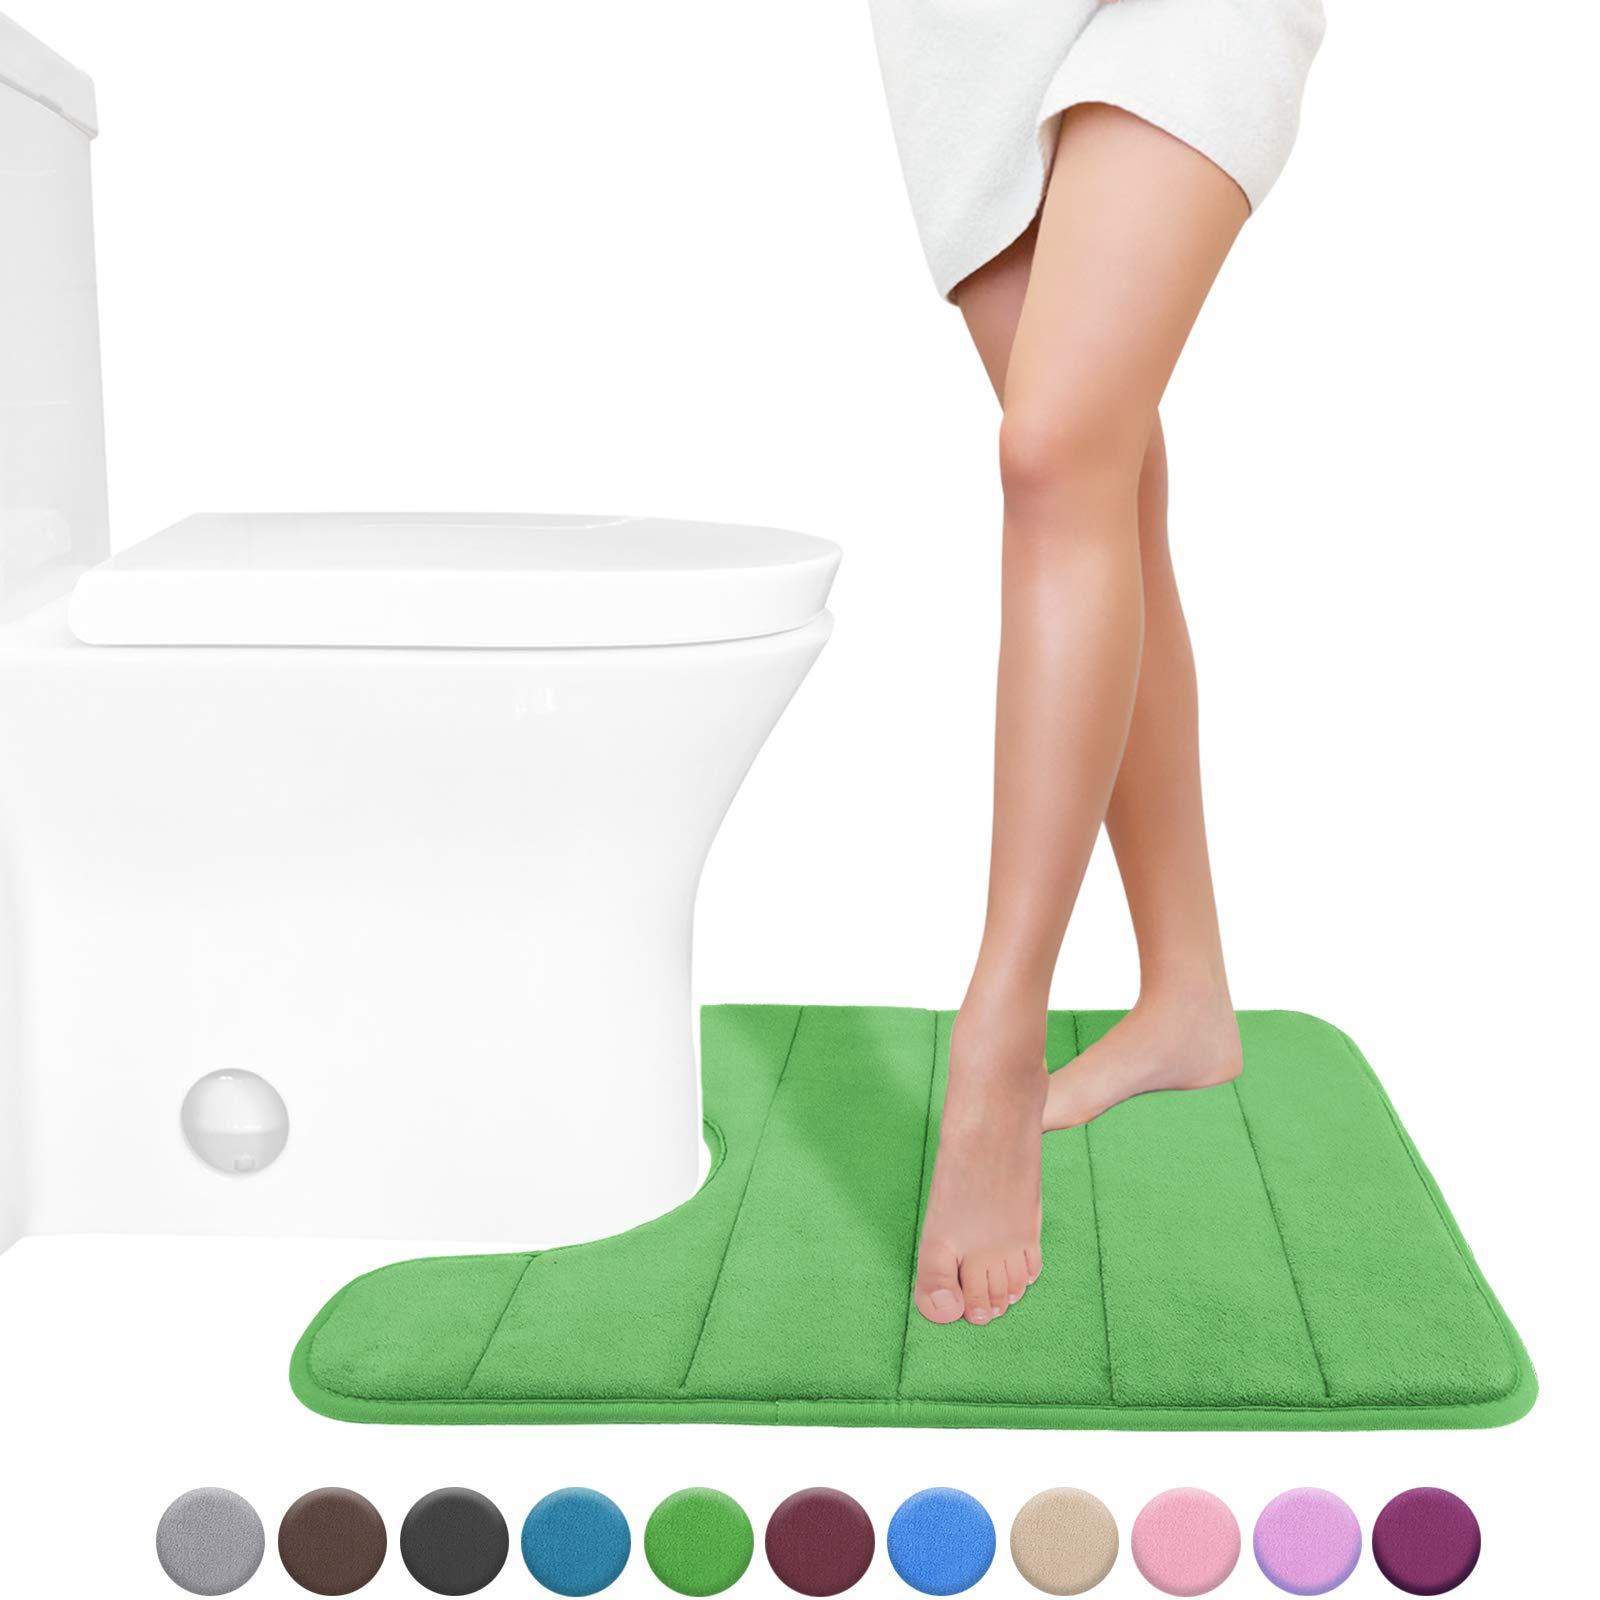 Yimobra Memory Foam Toilet Bath Mat U-Shaped, Soft and Comfortable, Super Water Absorption, Non-Slip, Thick, Machine Wash and Easier to Dry for Bathroom Commode Contour Rug, 24 X 20 Inches, Moss